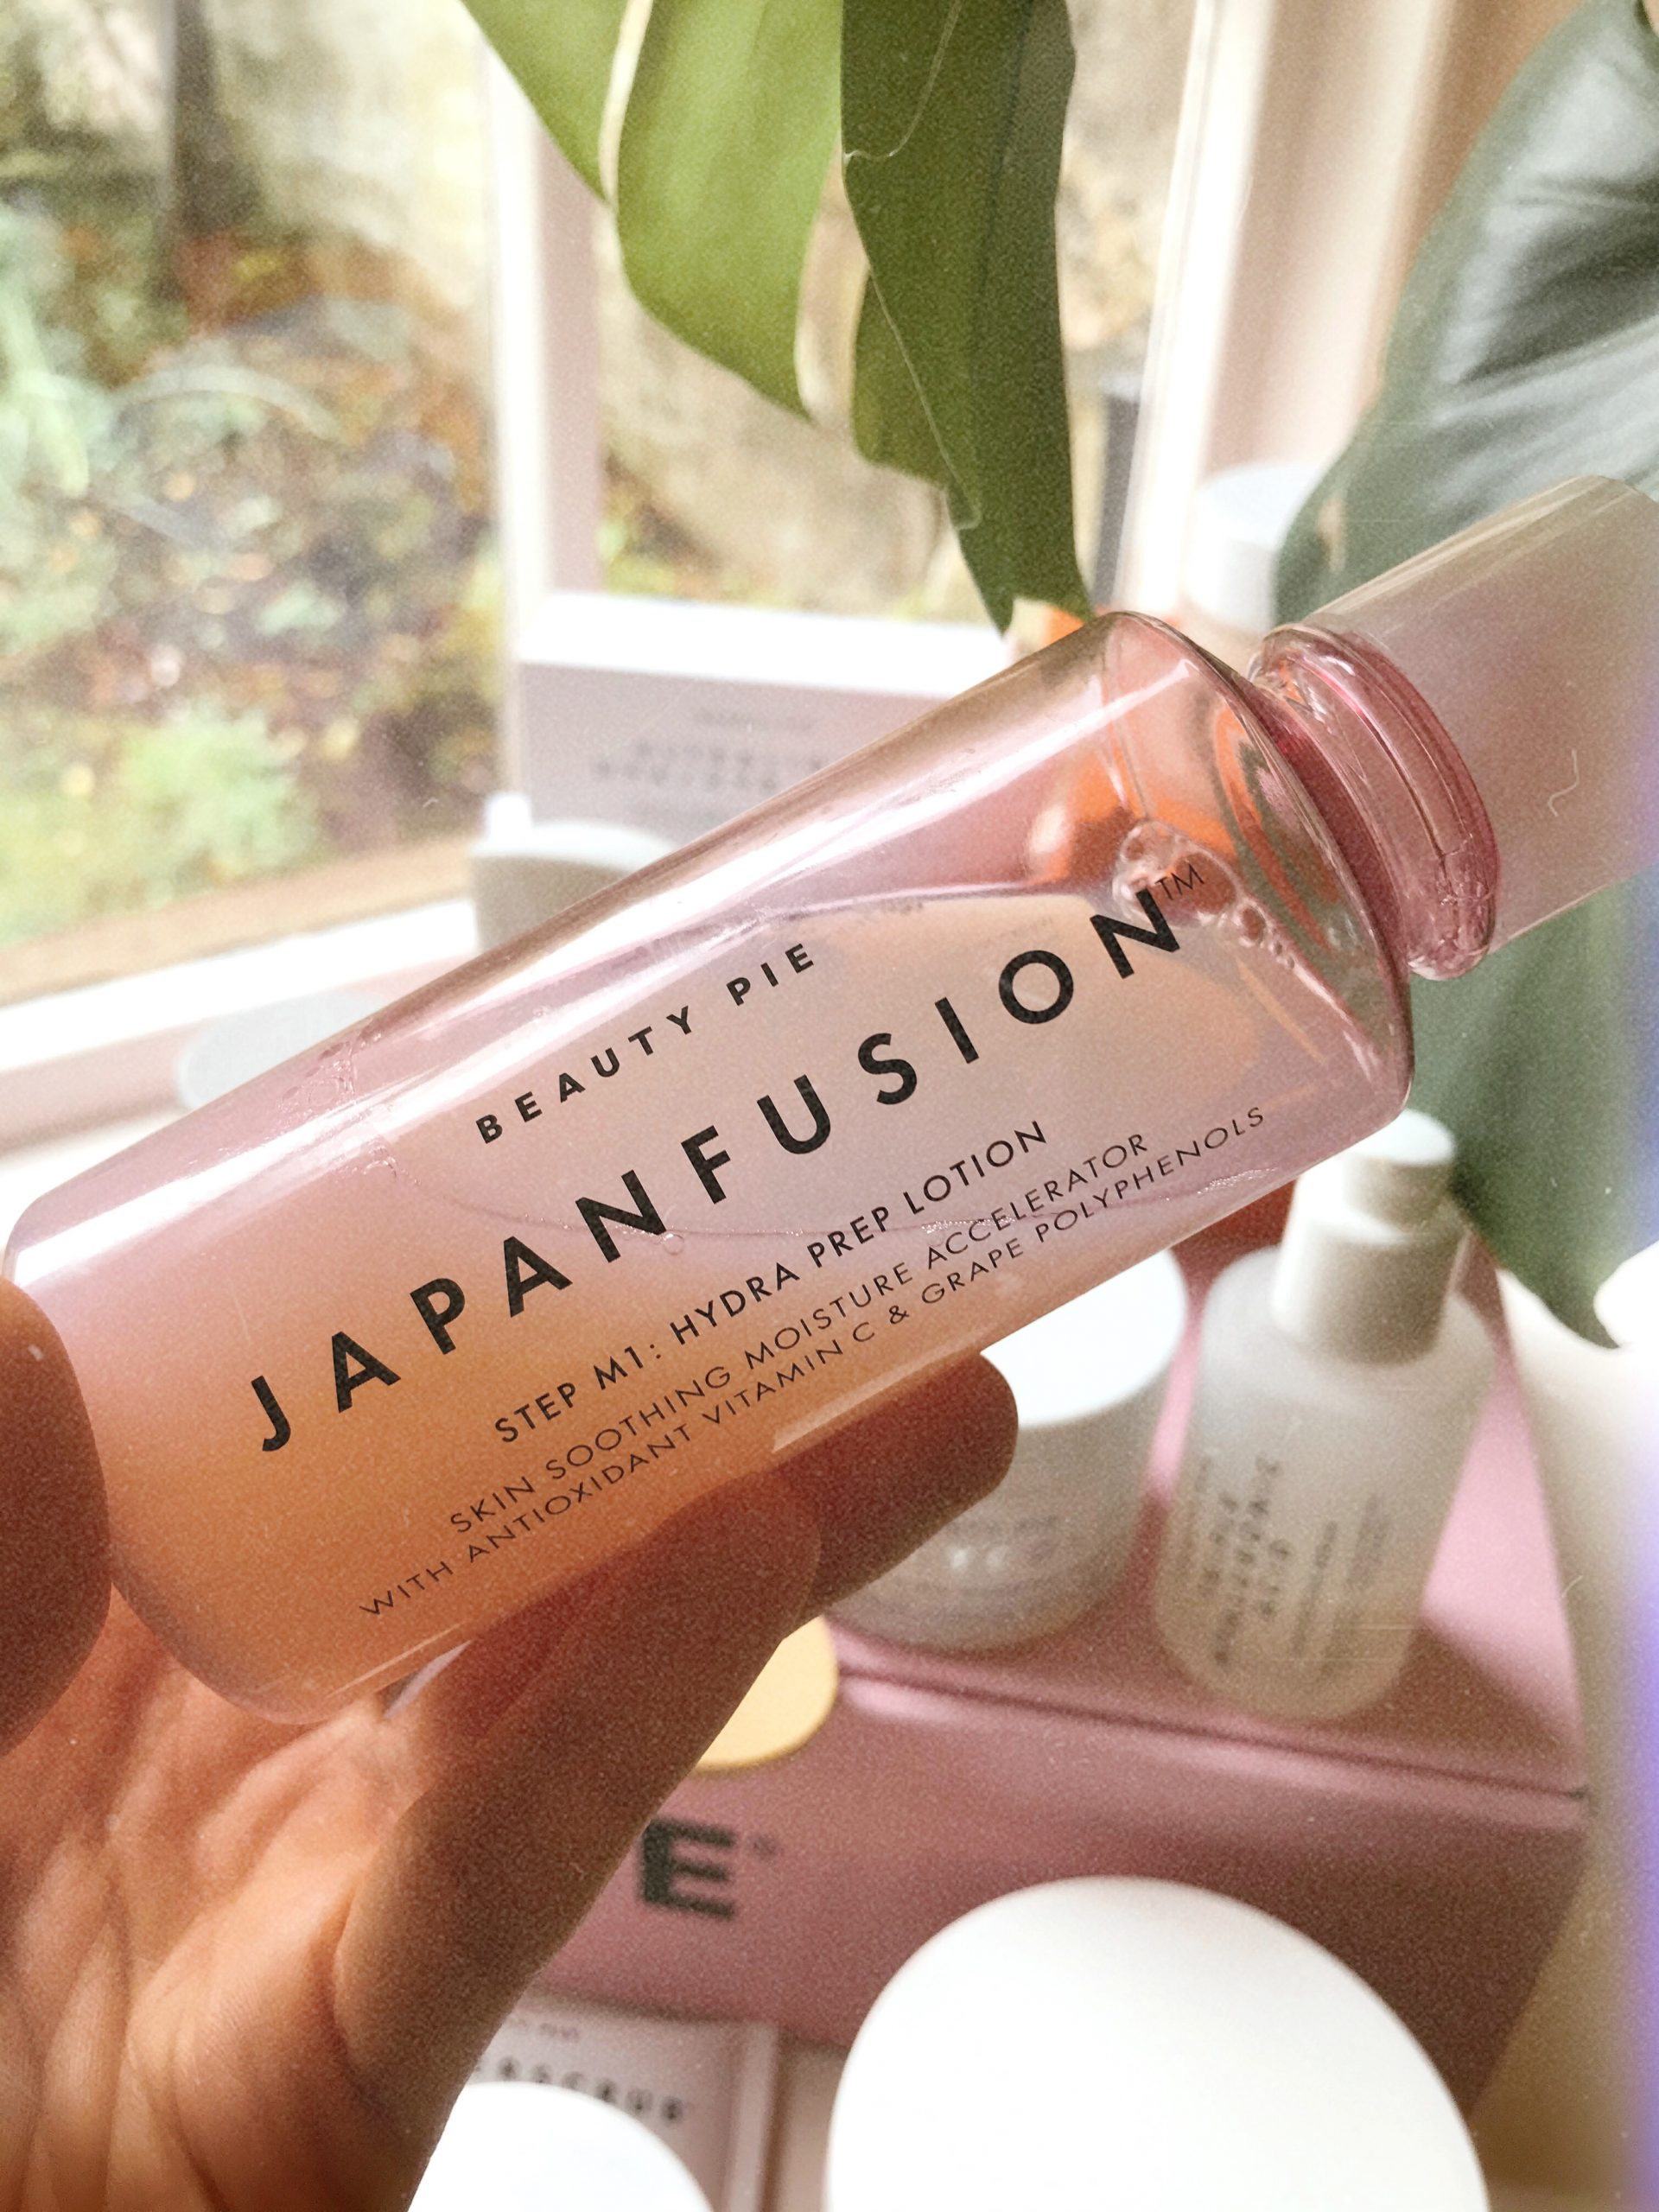 JapanFusion Hydra Prep Lotion Beauty Pie